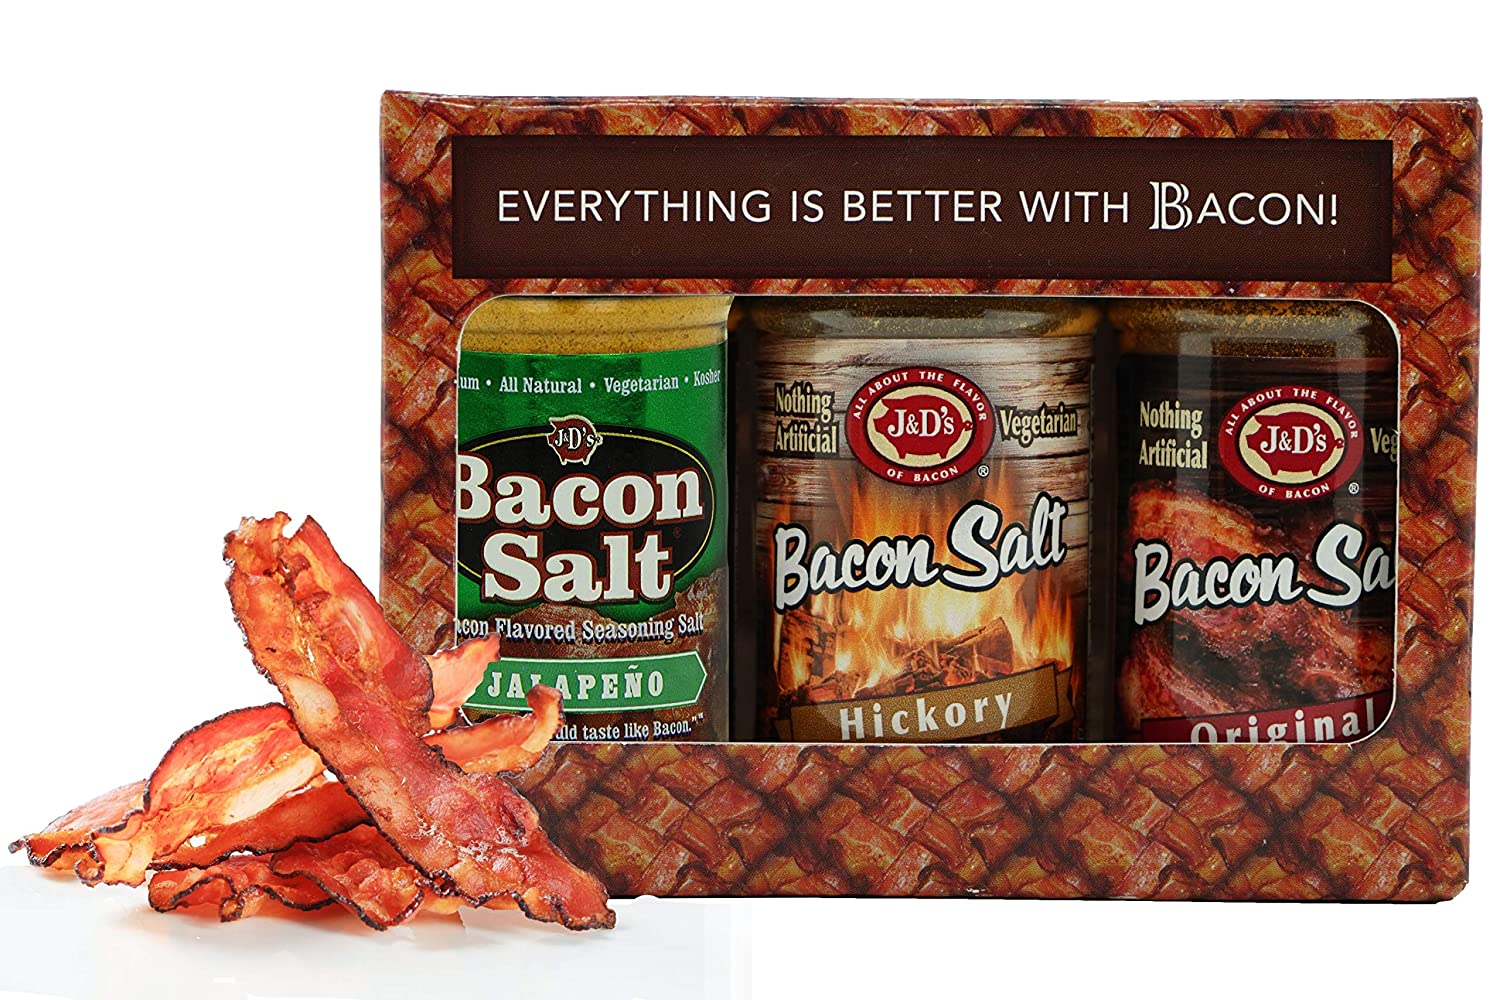 J&Ds Bacon Salt 3 Flavor Gift Box - Bacon Cure Seasoning Kit - Original, Hickory & Peppered Bacon Flavors - Vegan & Kosher Infused Salt – Unique Gift for Food Lover's - 3 x 2 Ounce Jars